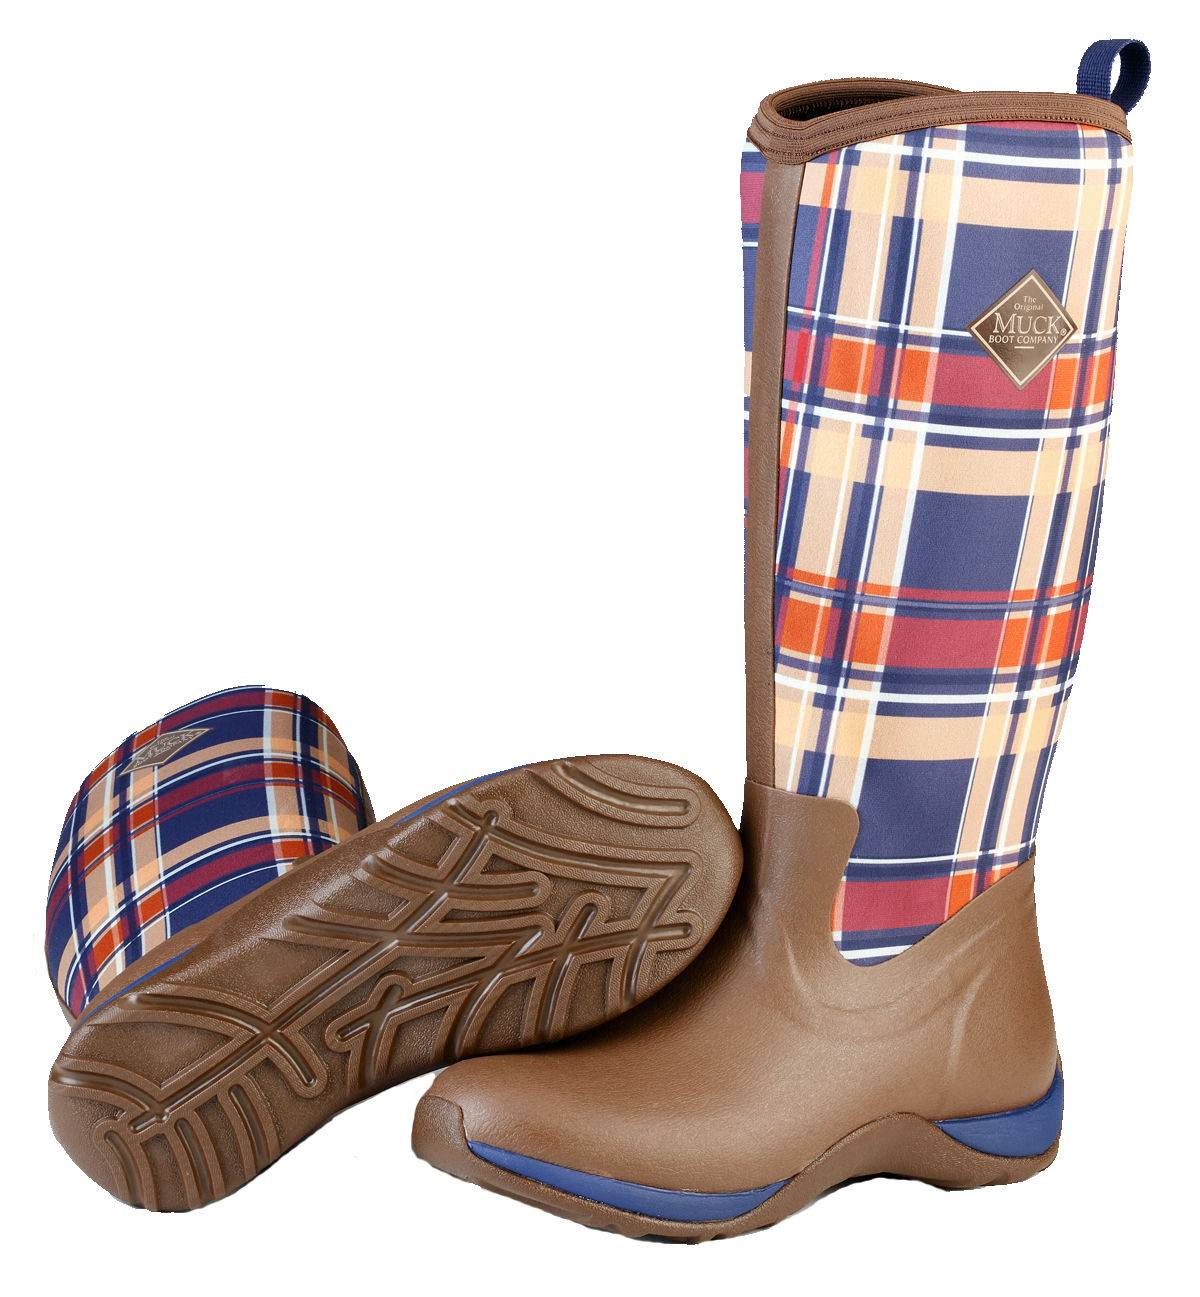 Muck Boots Ladies Arctic Adventure - Brown/Navy Plaid